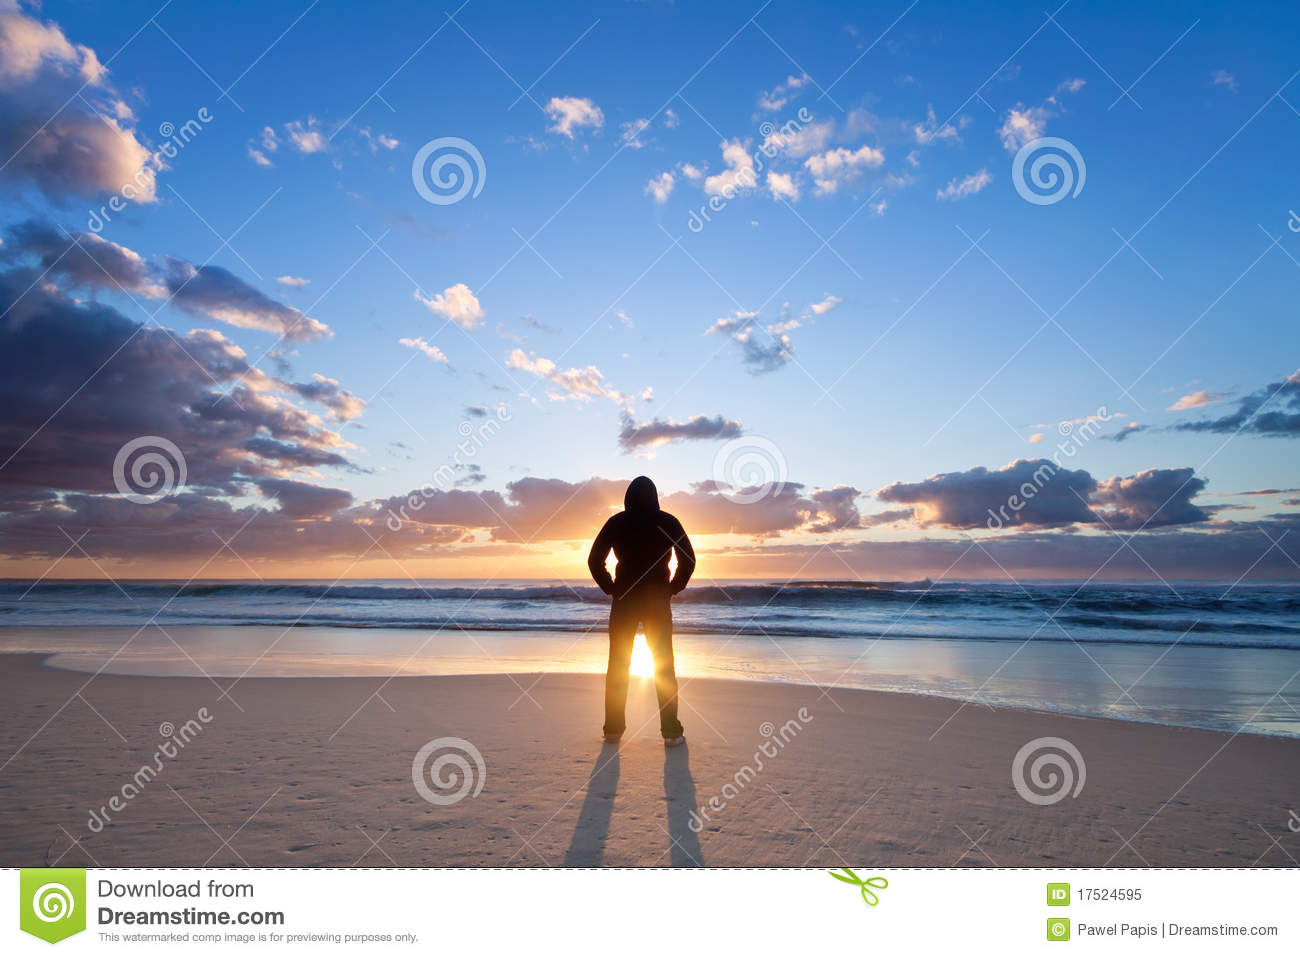 homme sur la plage devant le soleil levant image stock image du motion dur e 17524595. Black Bedroom Furniture Sets. Home Design Ideas